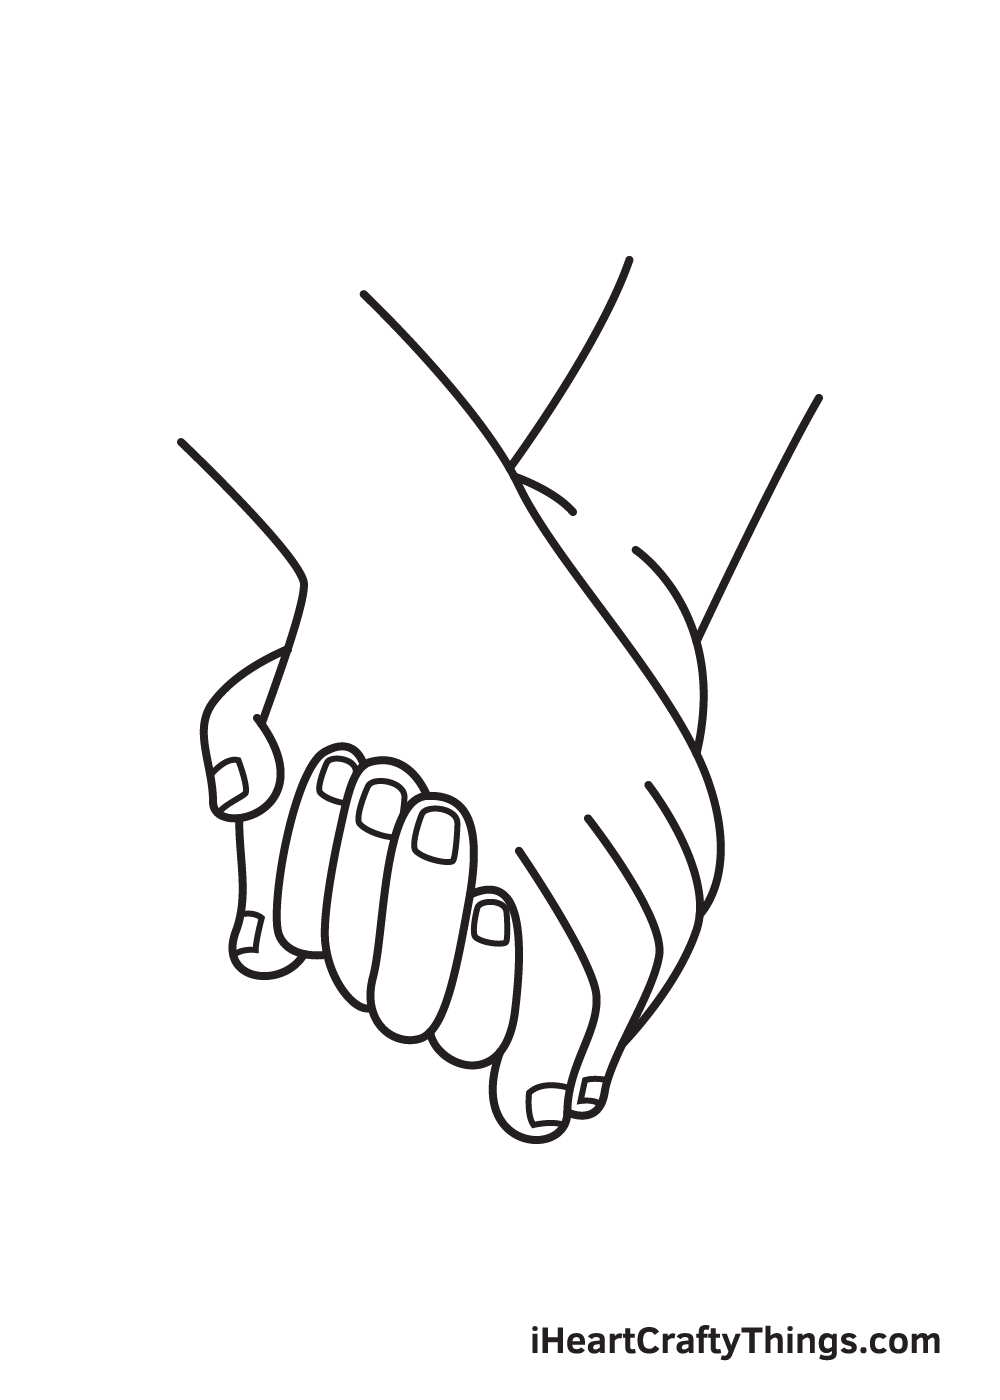 holding hands drawing step 9